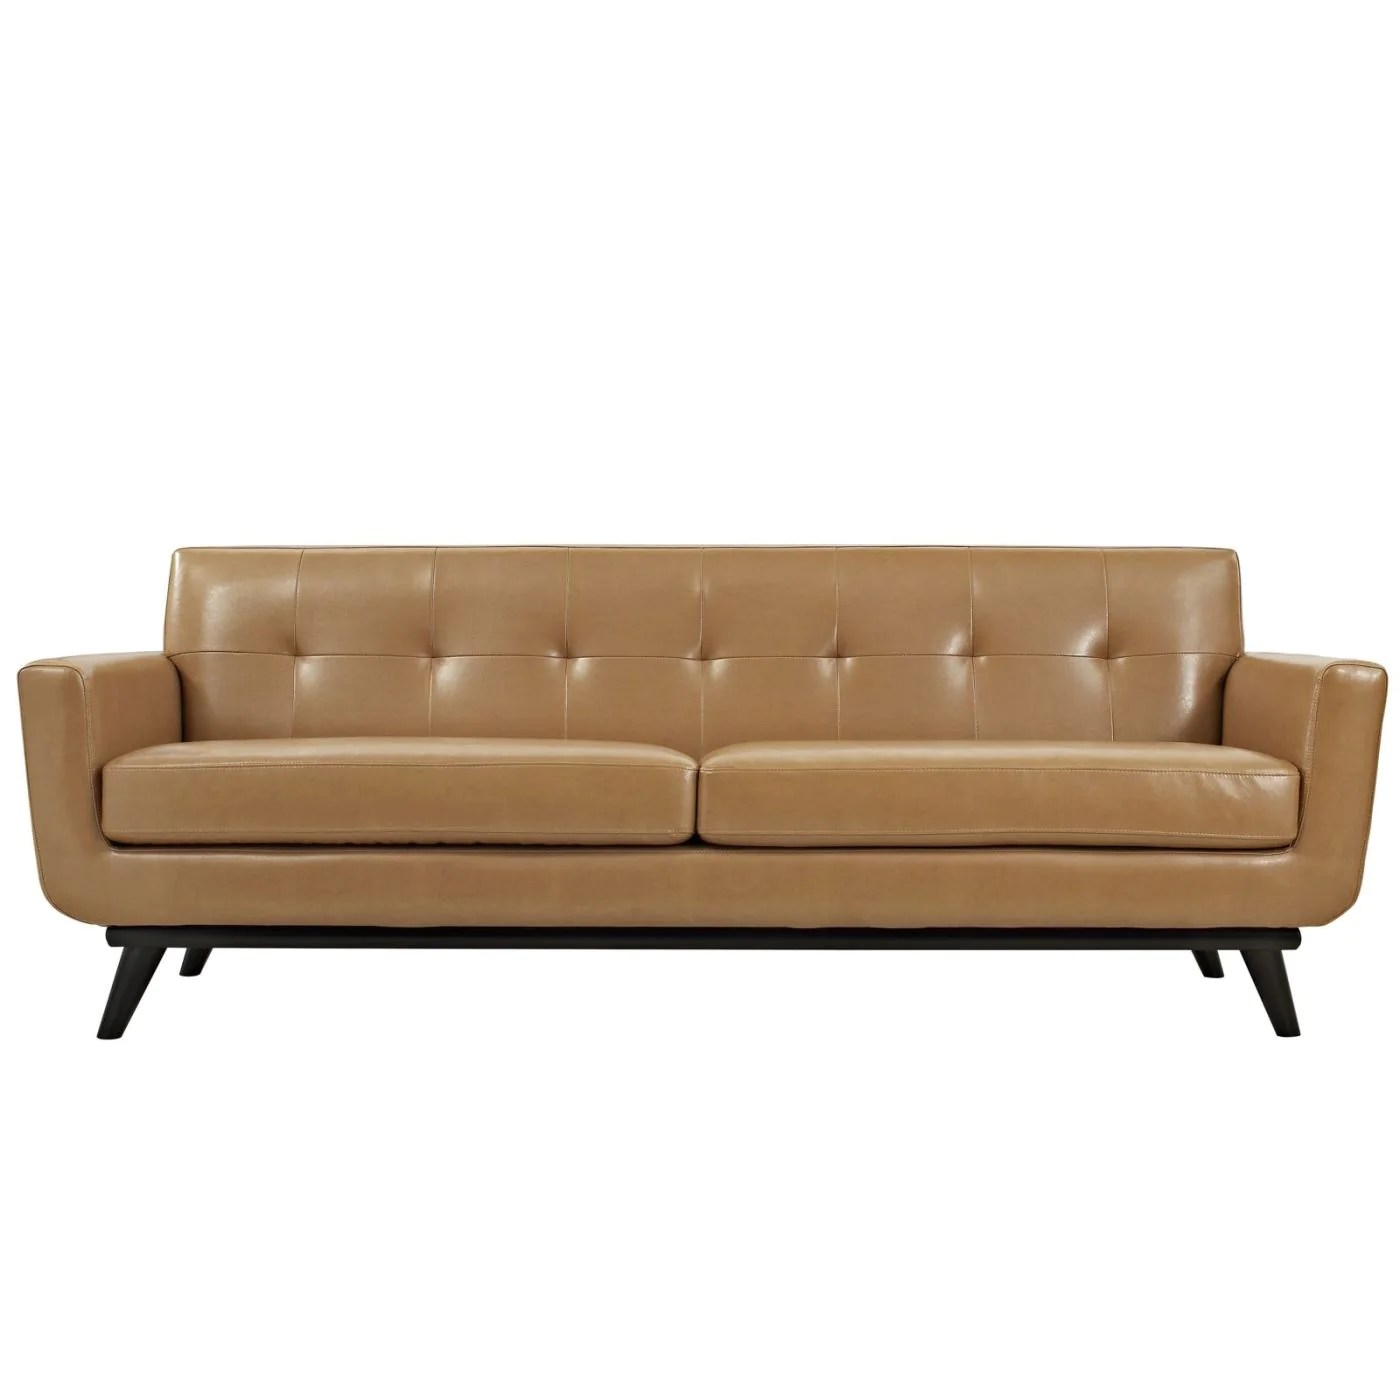 Modway Sofas On Sale Eei 1338 Tan Engage Mid Century Modern Bonded Leather Sofa Only Only 1 062 80 At Contemporary Furniture Warehouse